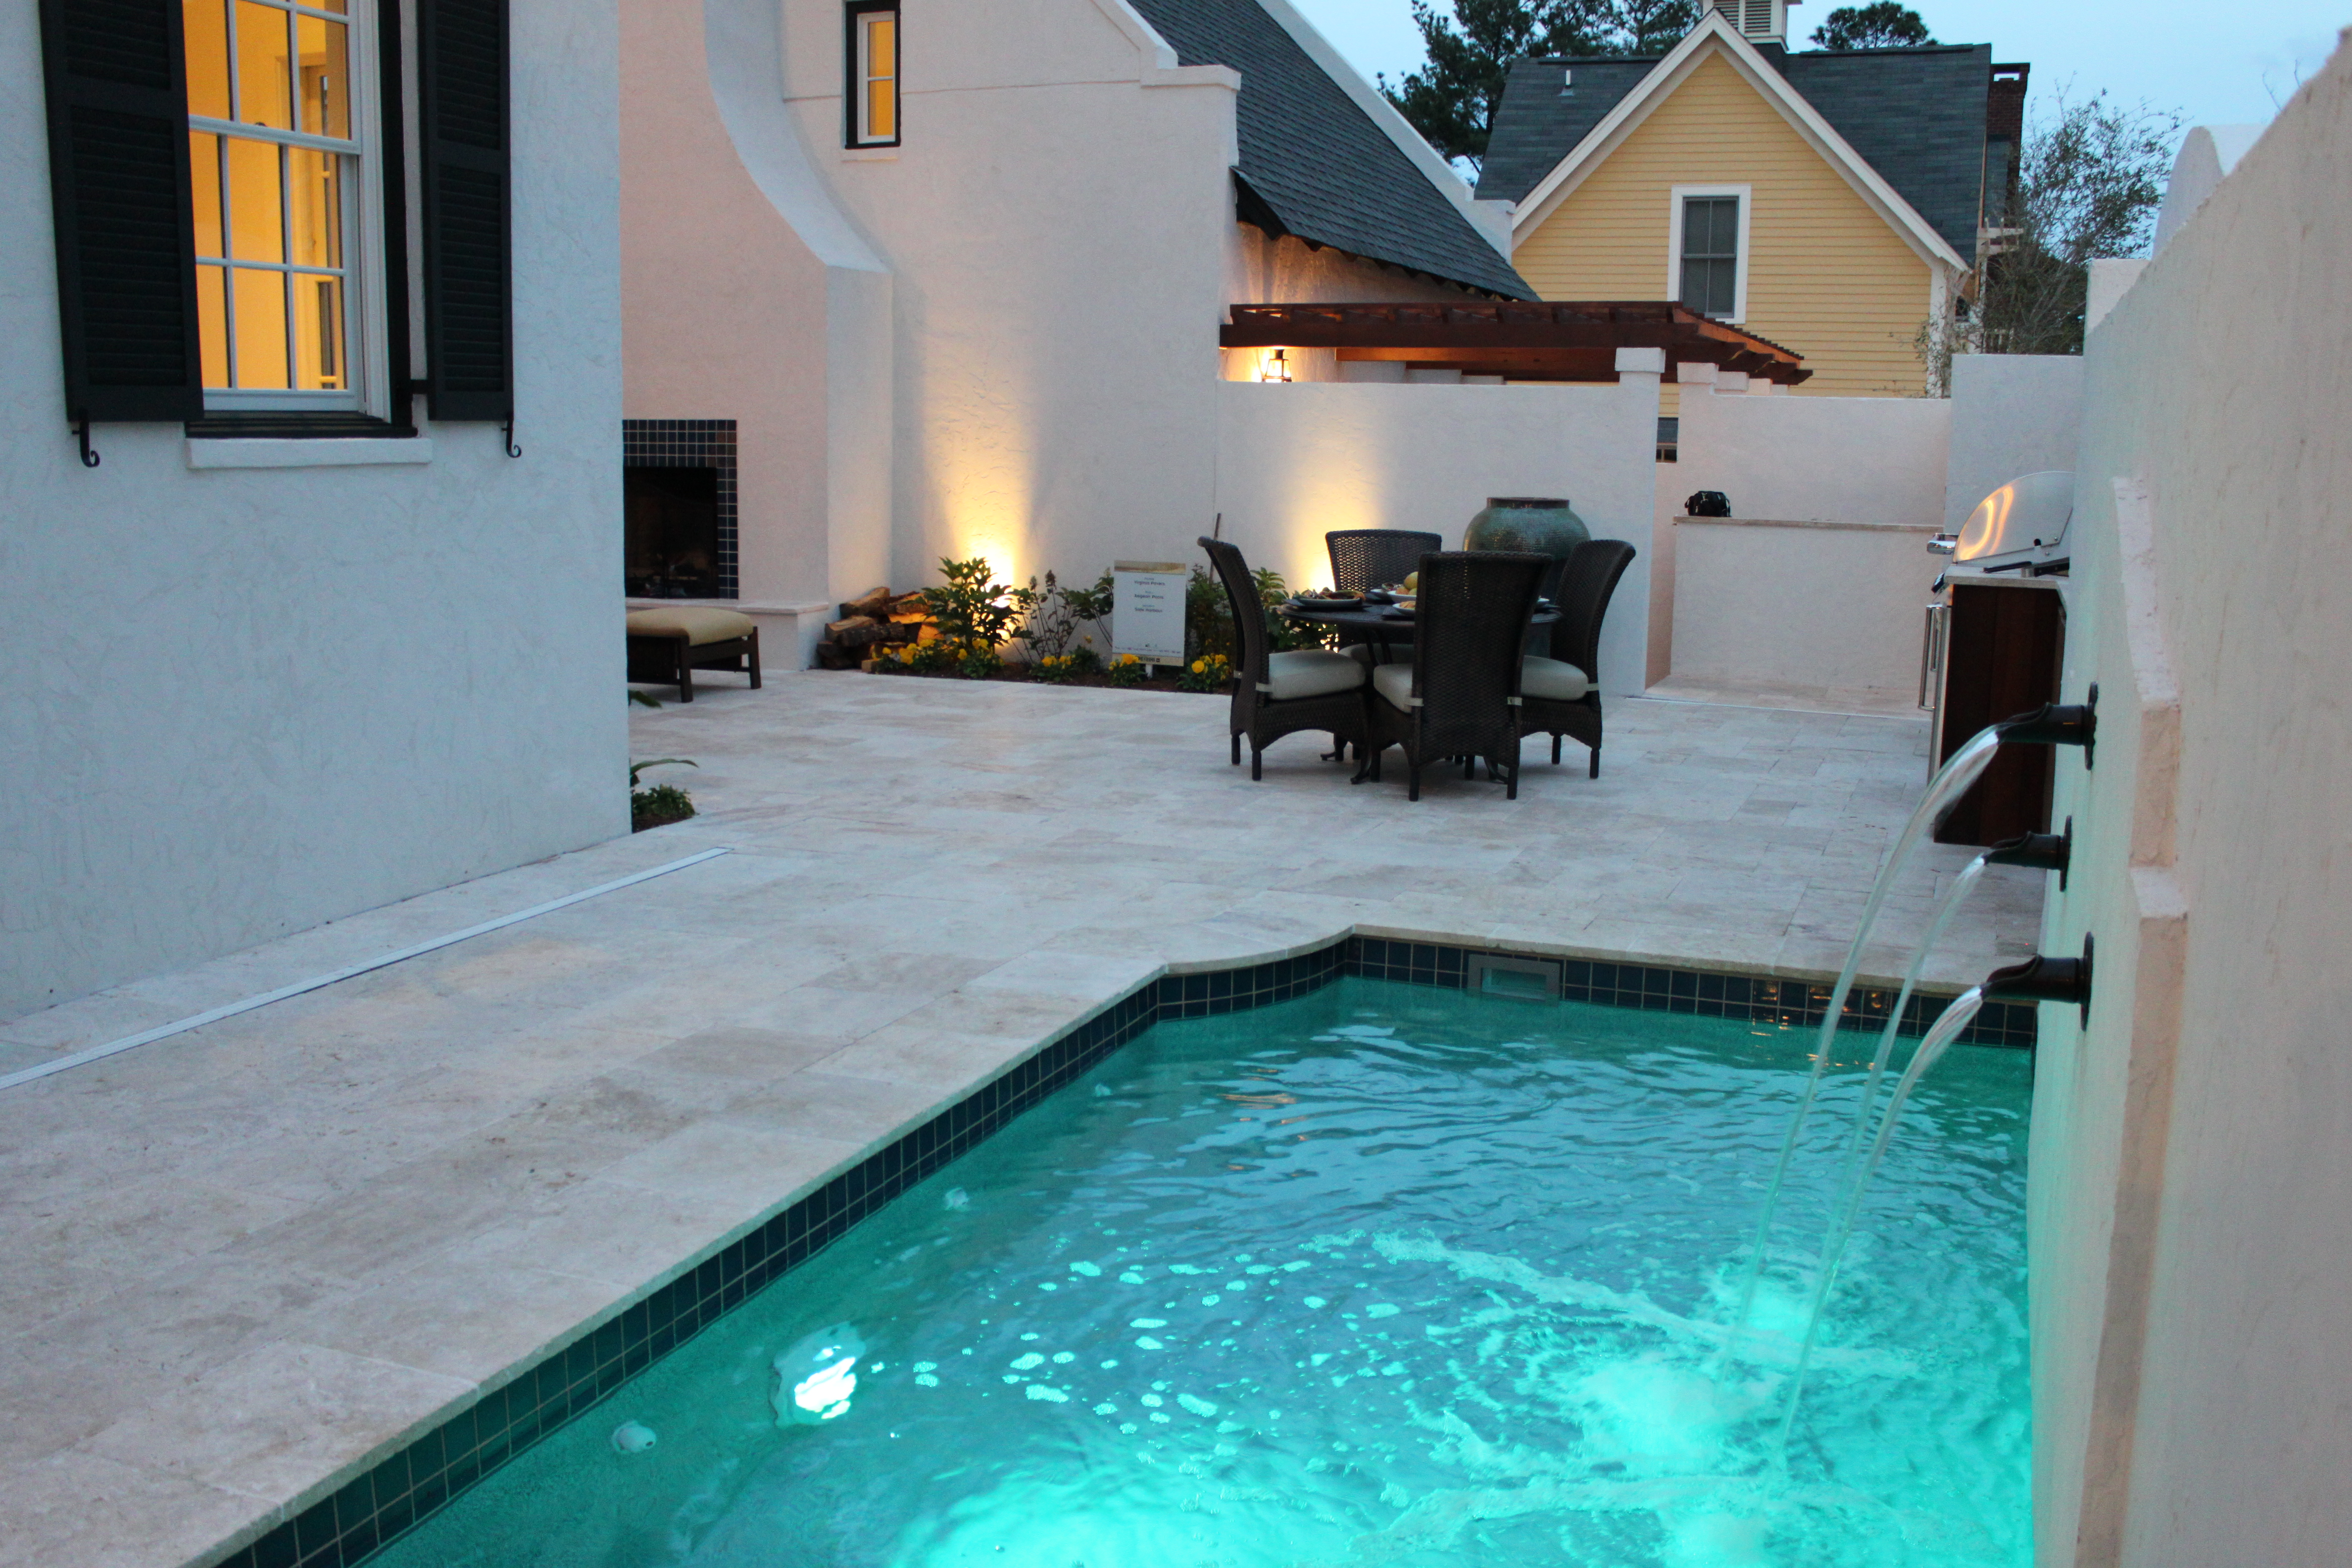 Patio pool 3a